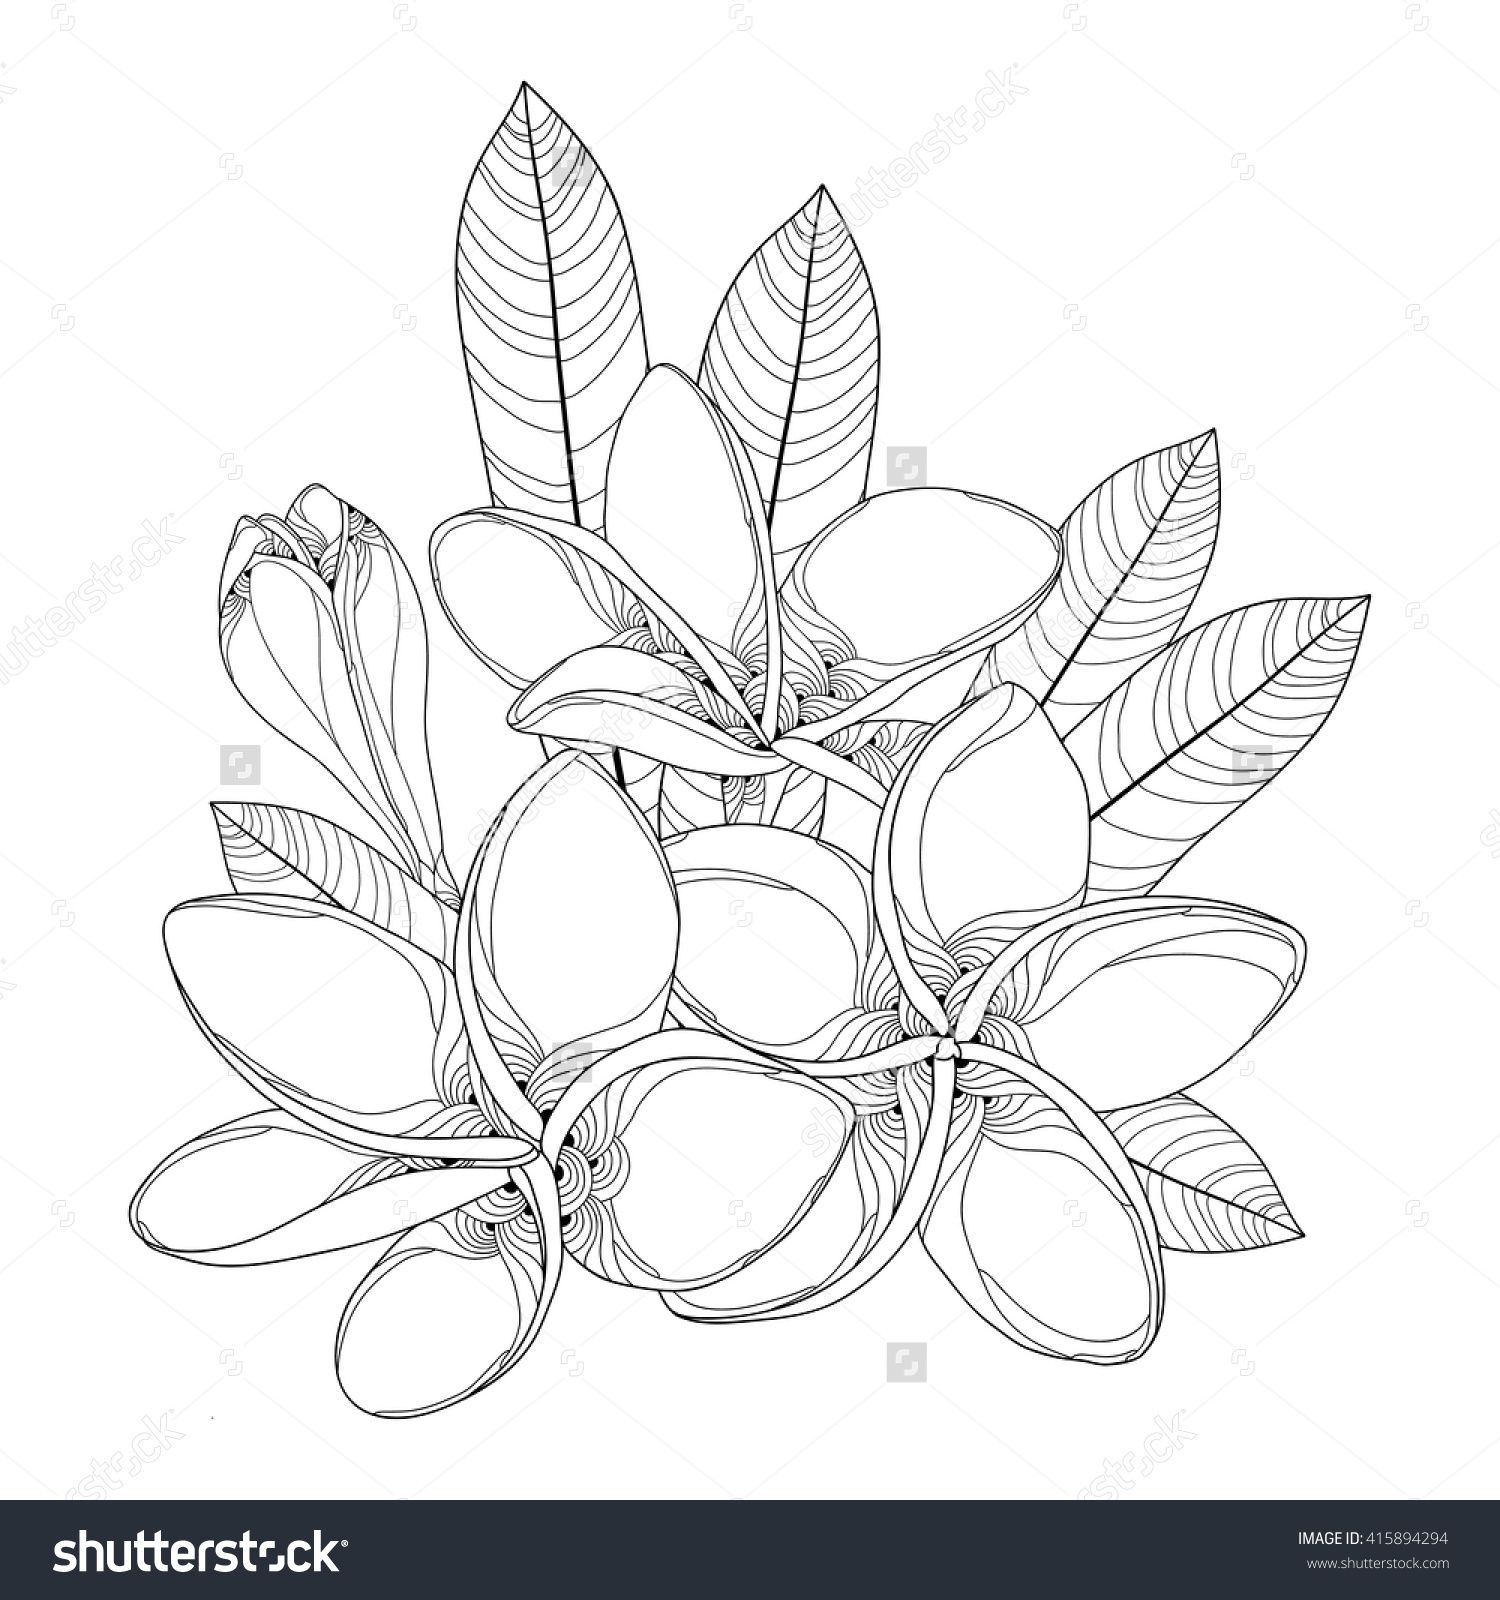 Stock Vector Bouquet With Ornate Plumeria Or Frangipani Flower Bud